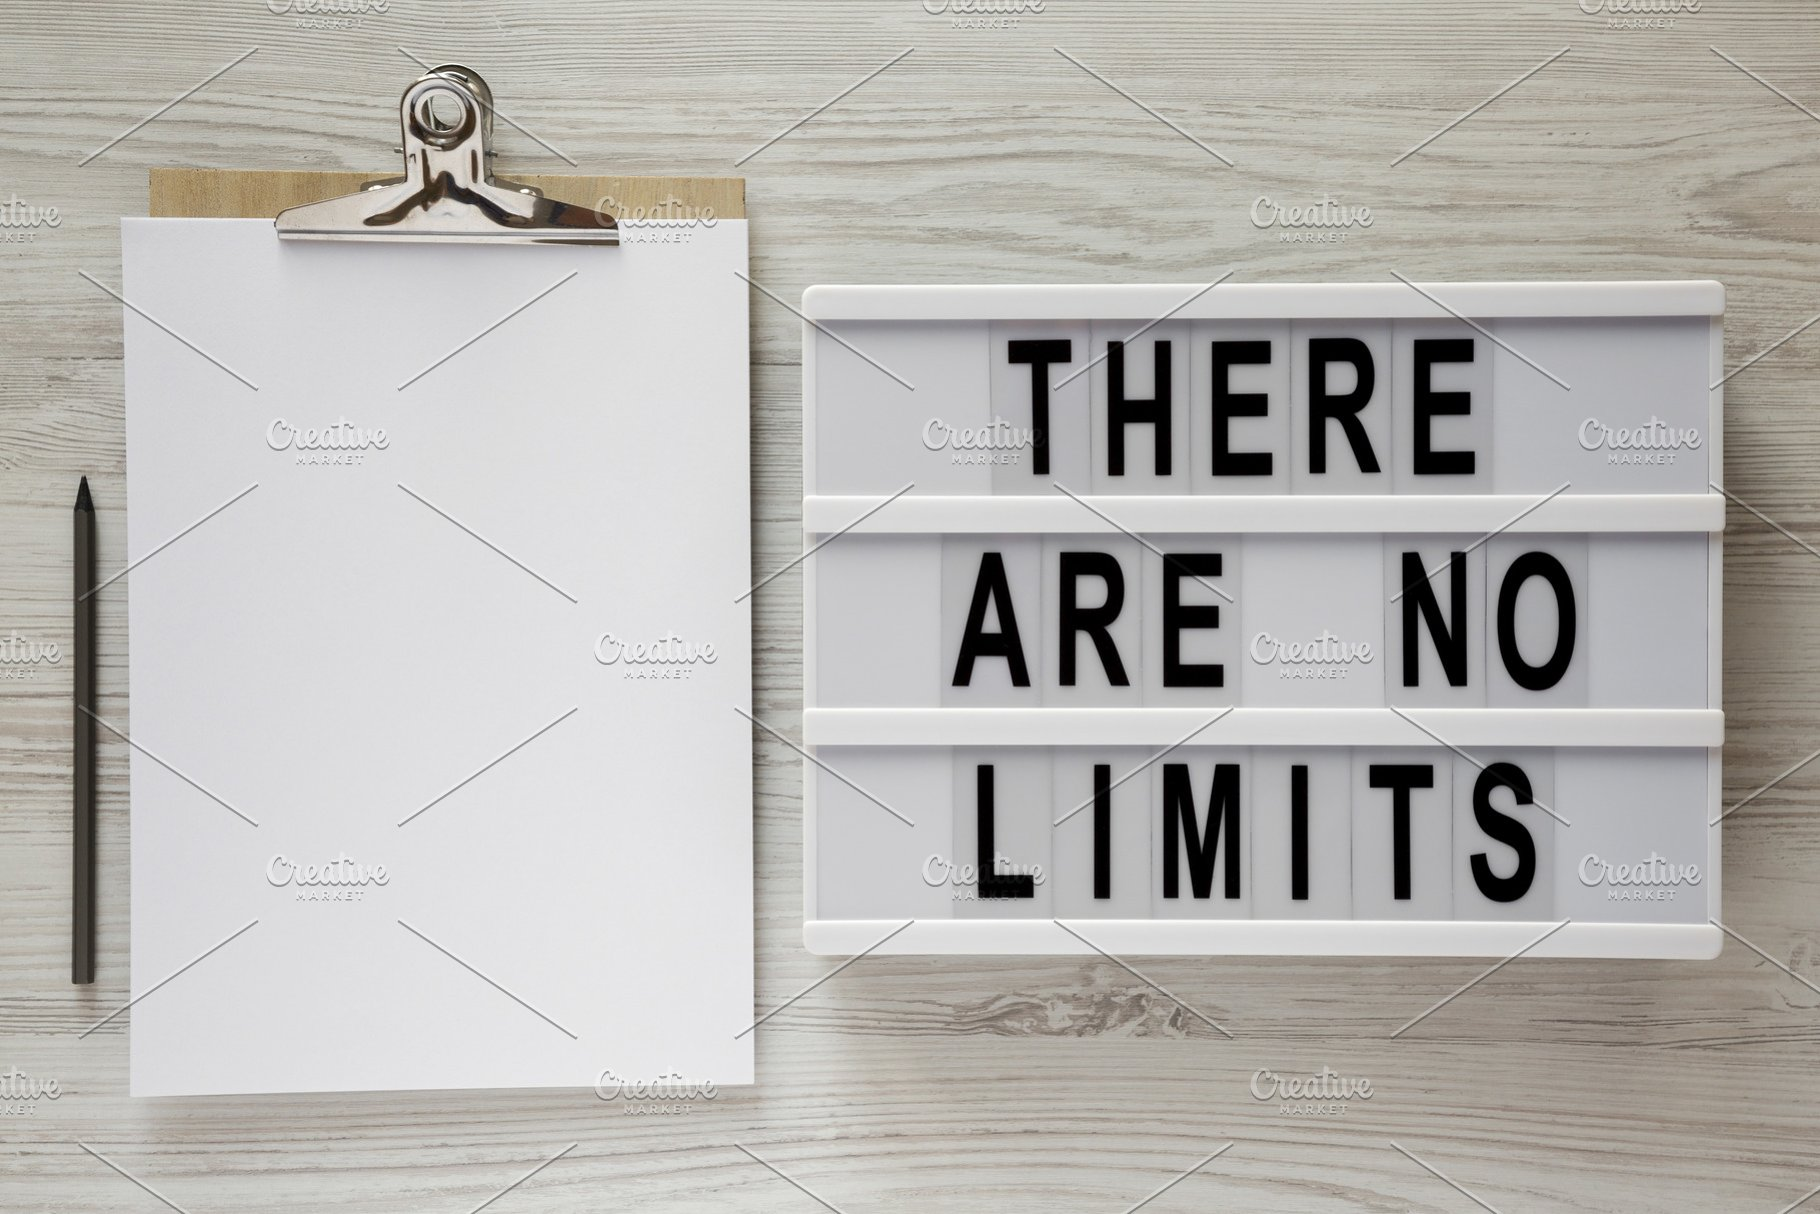 Lightbox 'There are no limits'